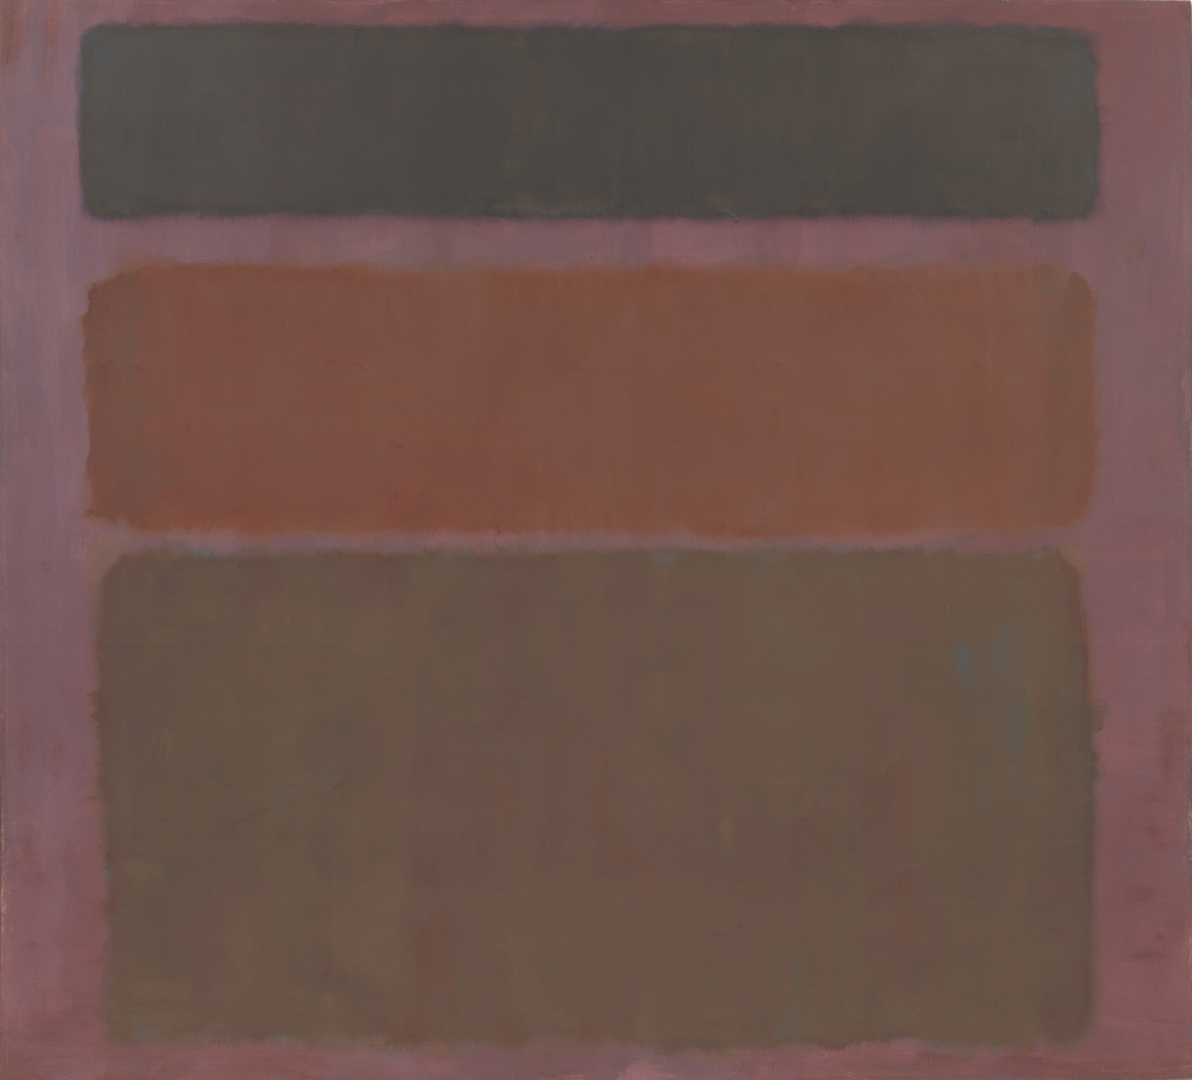 No. 16 (Red, Brown, and Black). 1958 image